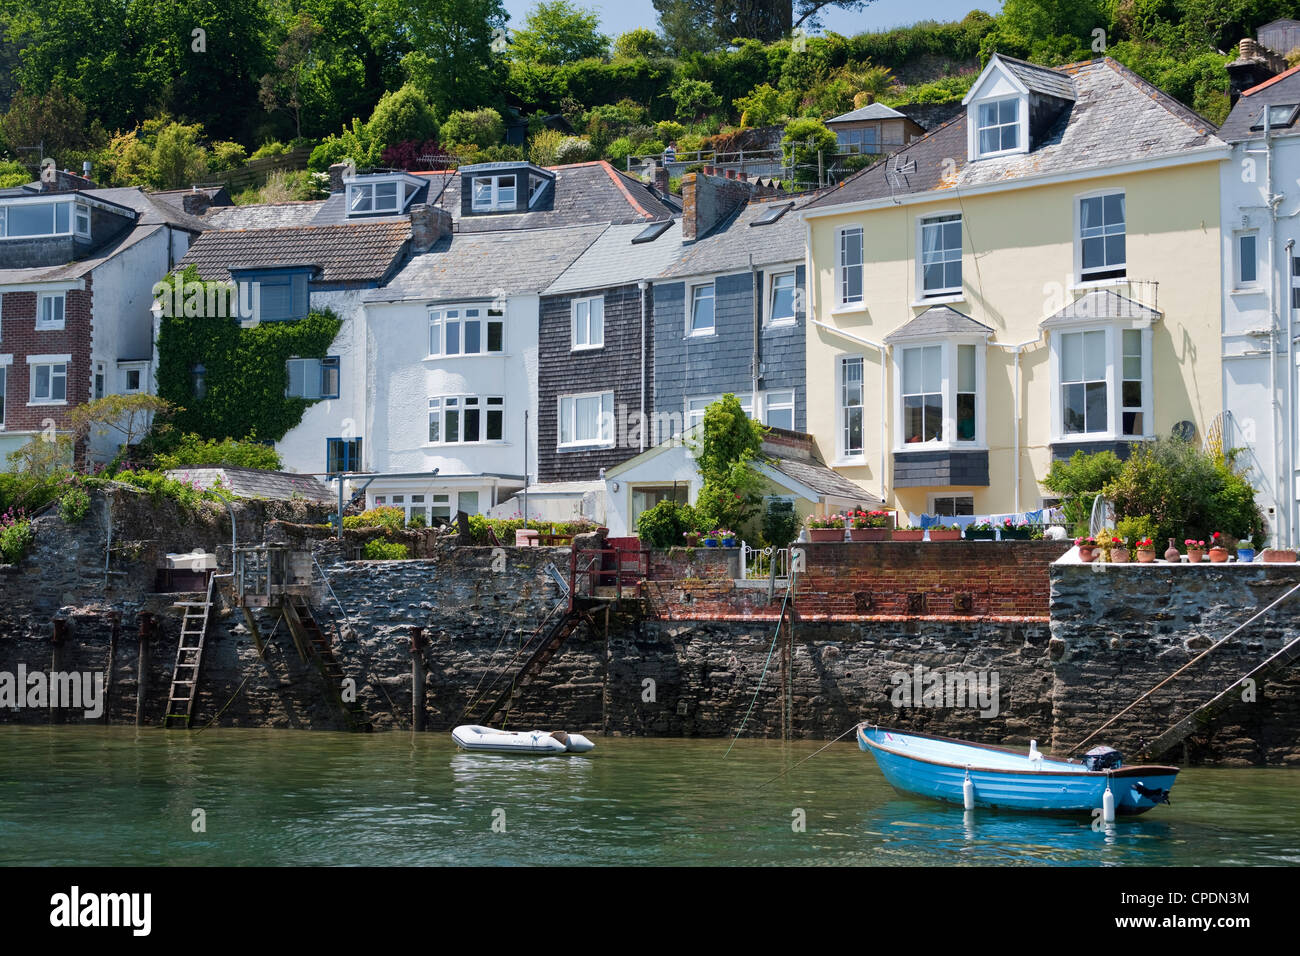 Houses on the waters edge in Fowey, Cornwall, England, United Kingdom, Europe - Stock Image